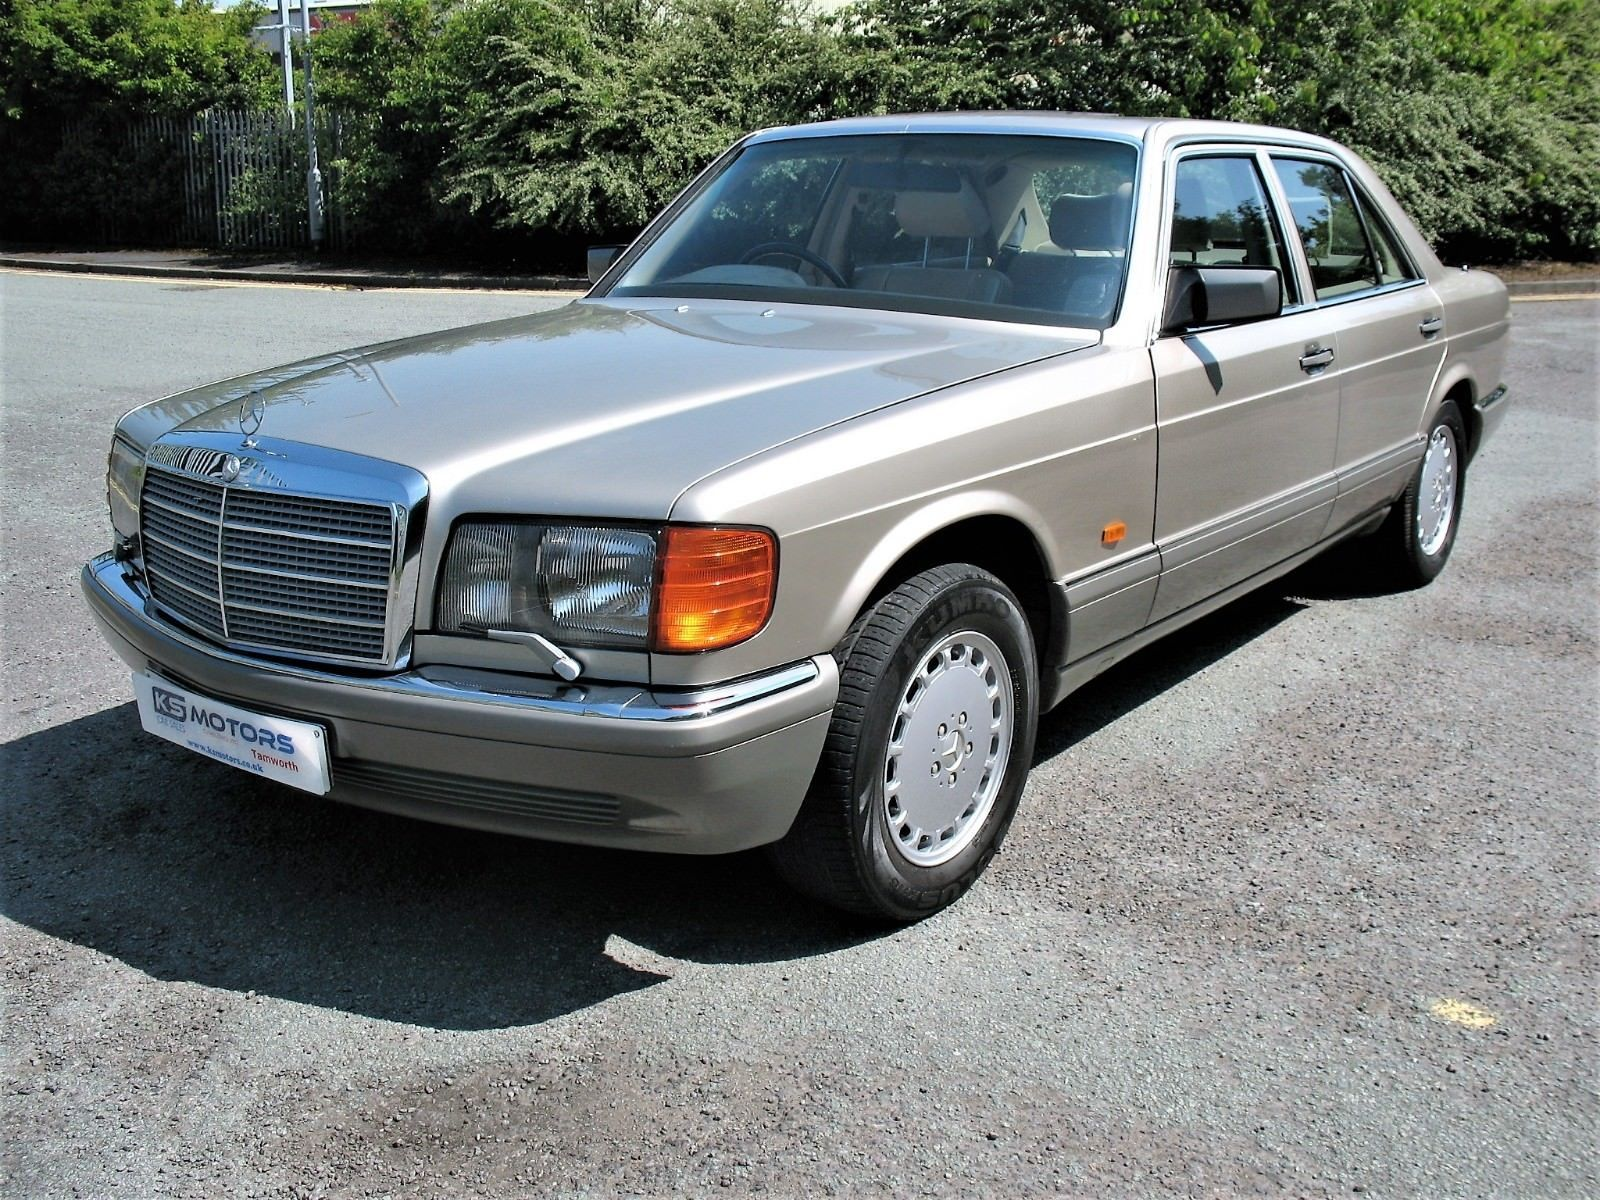 Ebay Mercedes Benz 500se W126 1991 H Registration Two Tone Smoke Silver 99k Miles Classiccars Ca Mercedes Benz Mercedes Benz World Mercedes Benz Classic